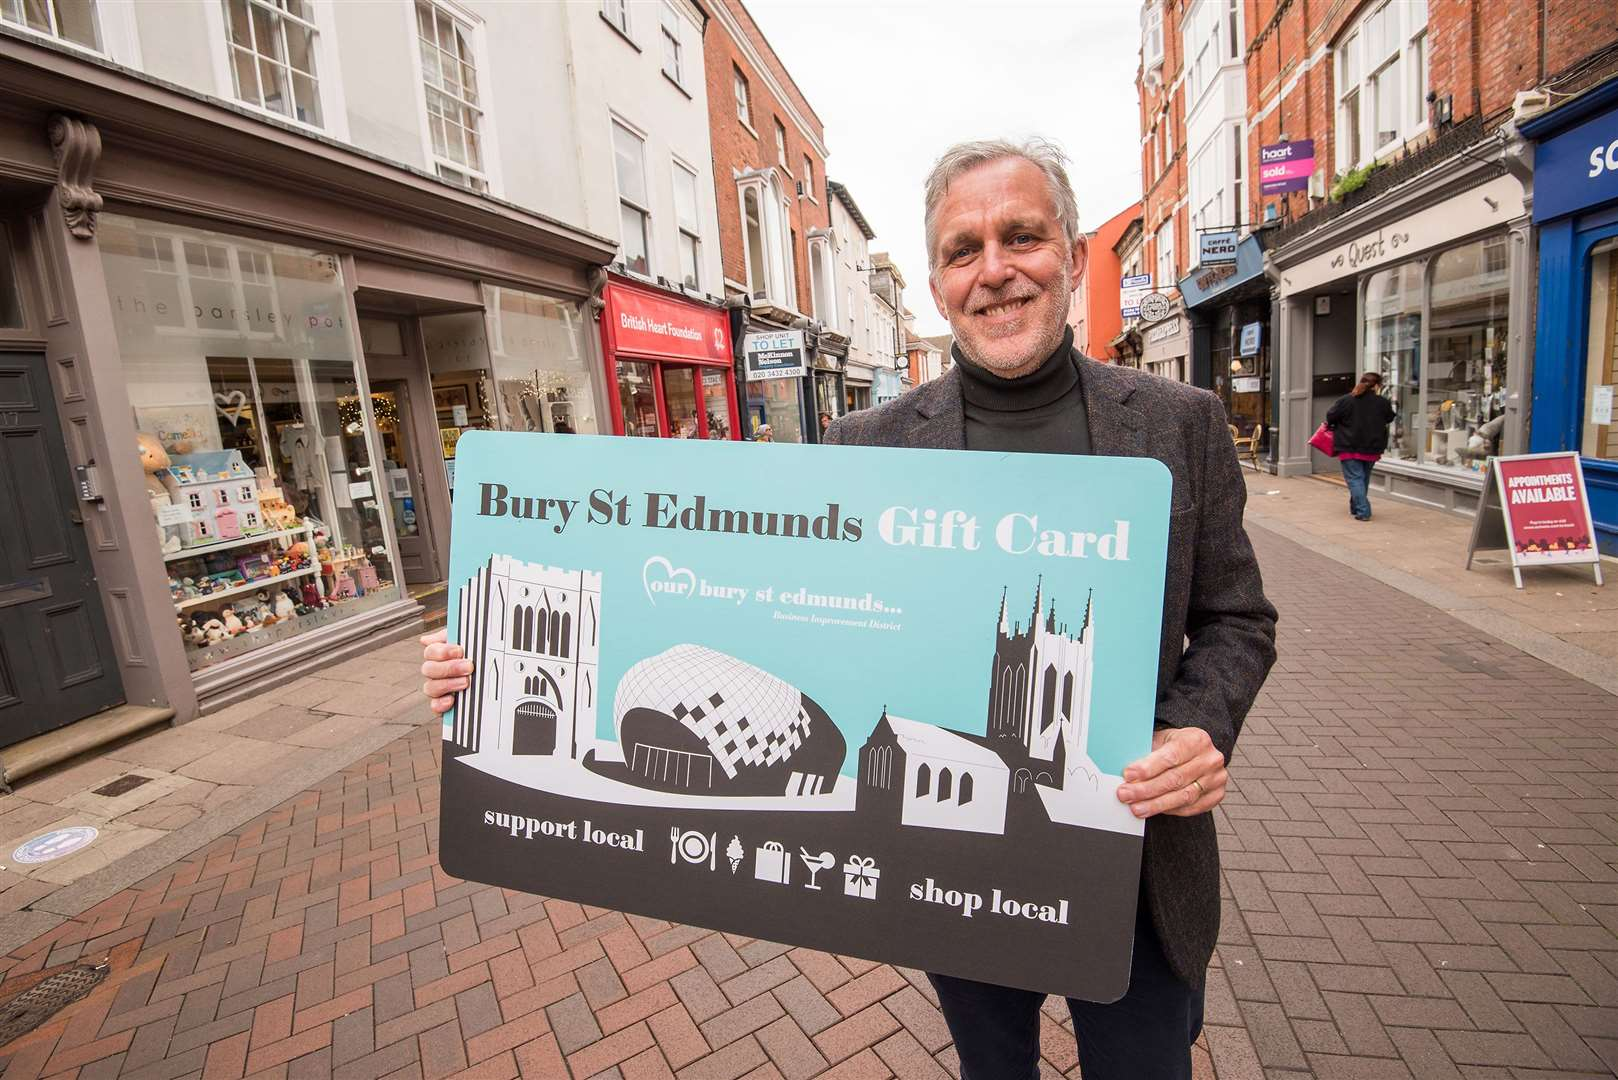 Mark Cordell, chief executive of Our Bury St Edmunds Business Improvement District. Last week the BID launched a town centre gift card. Picture by Mark Westley